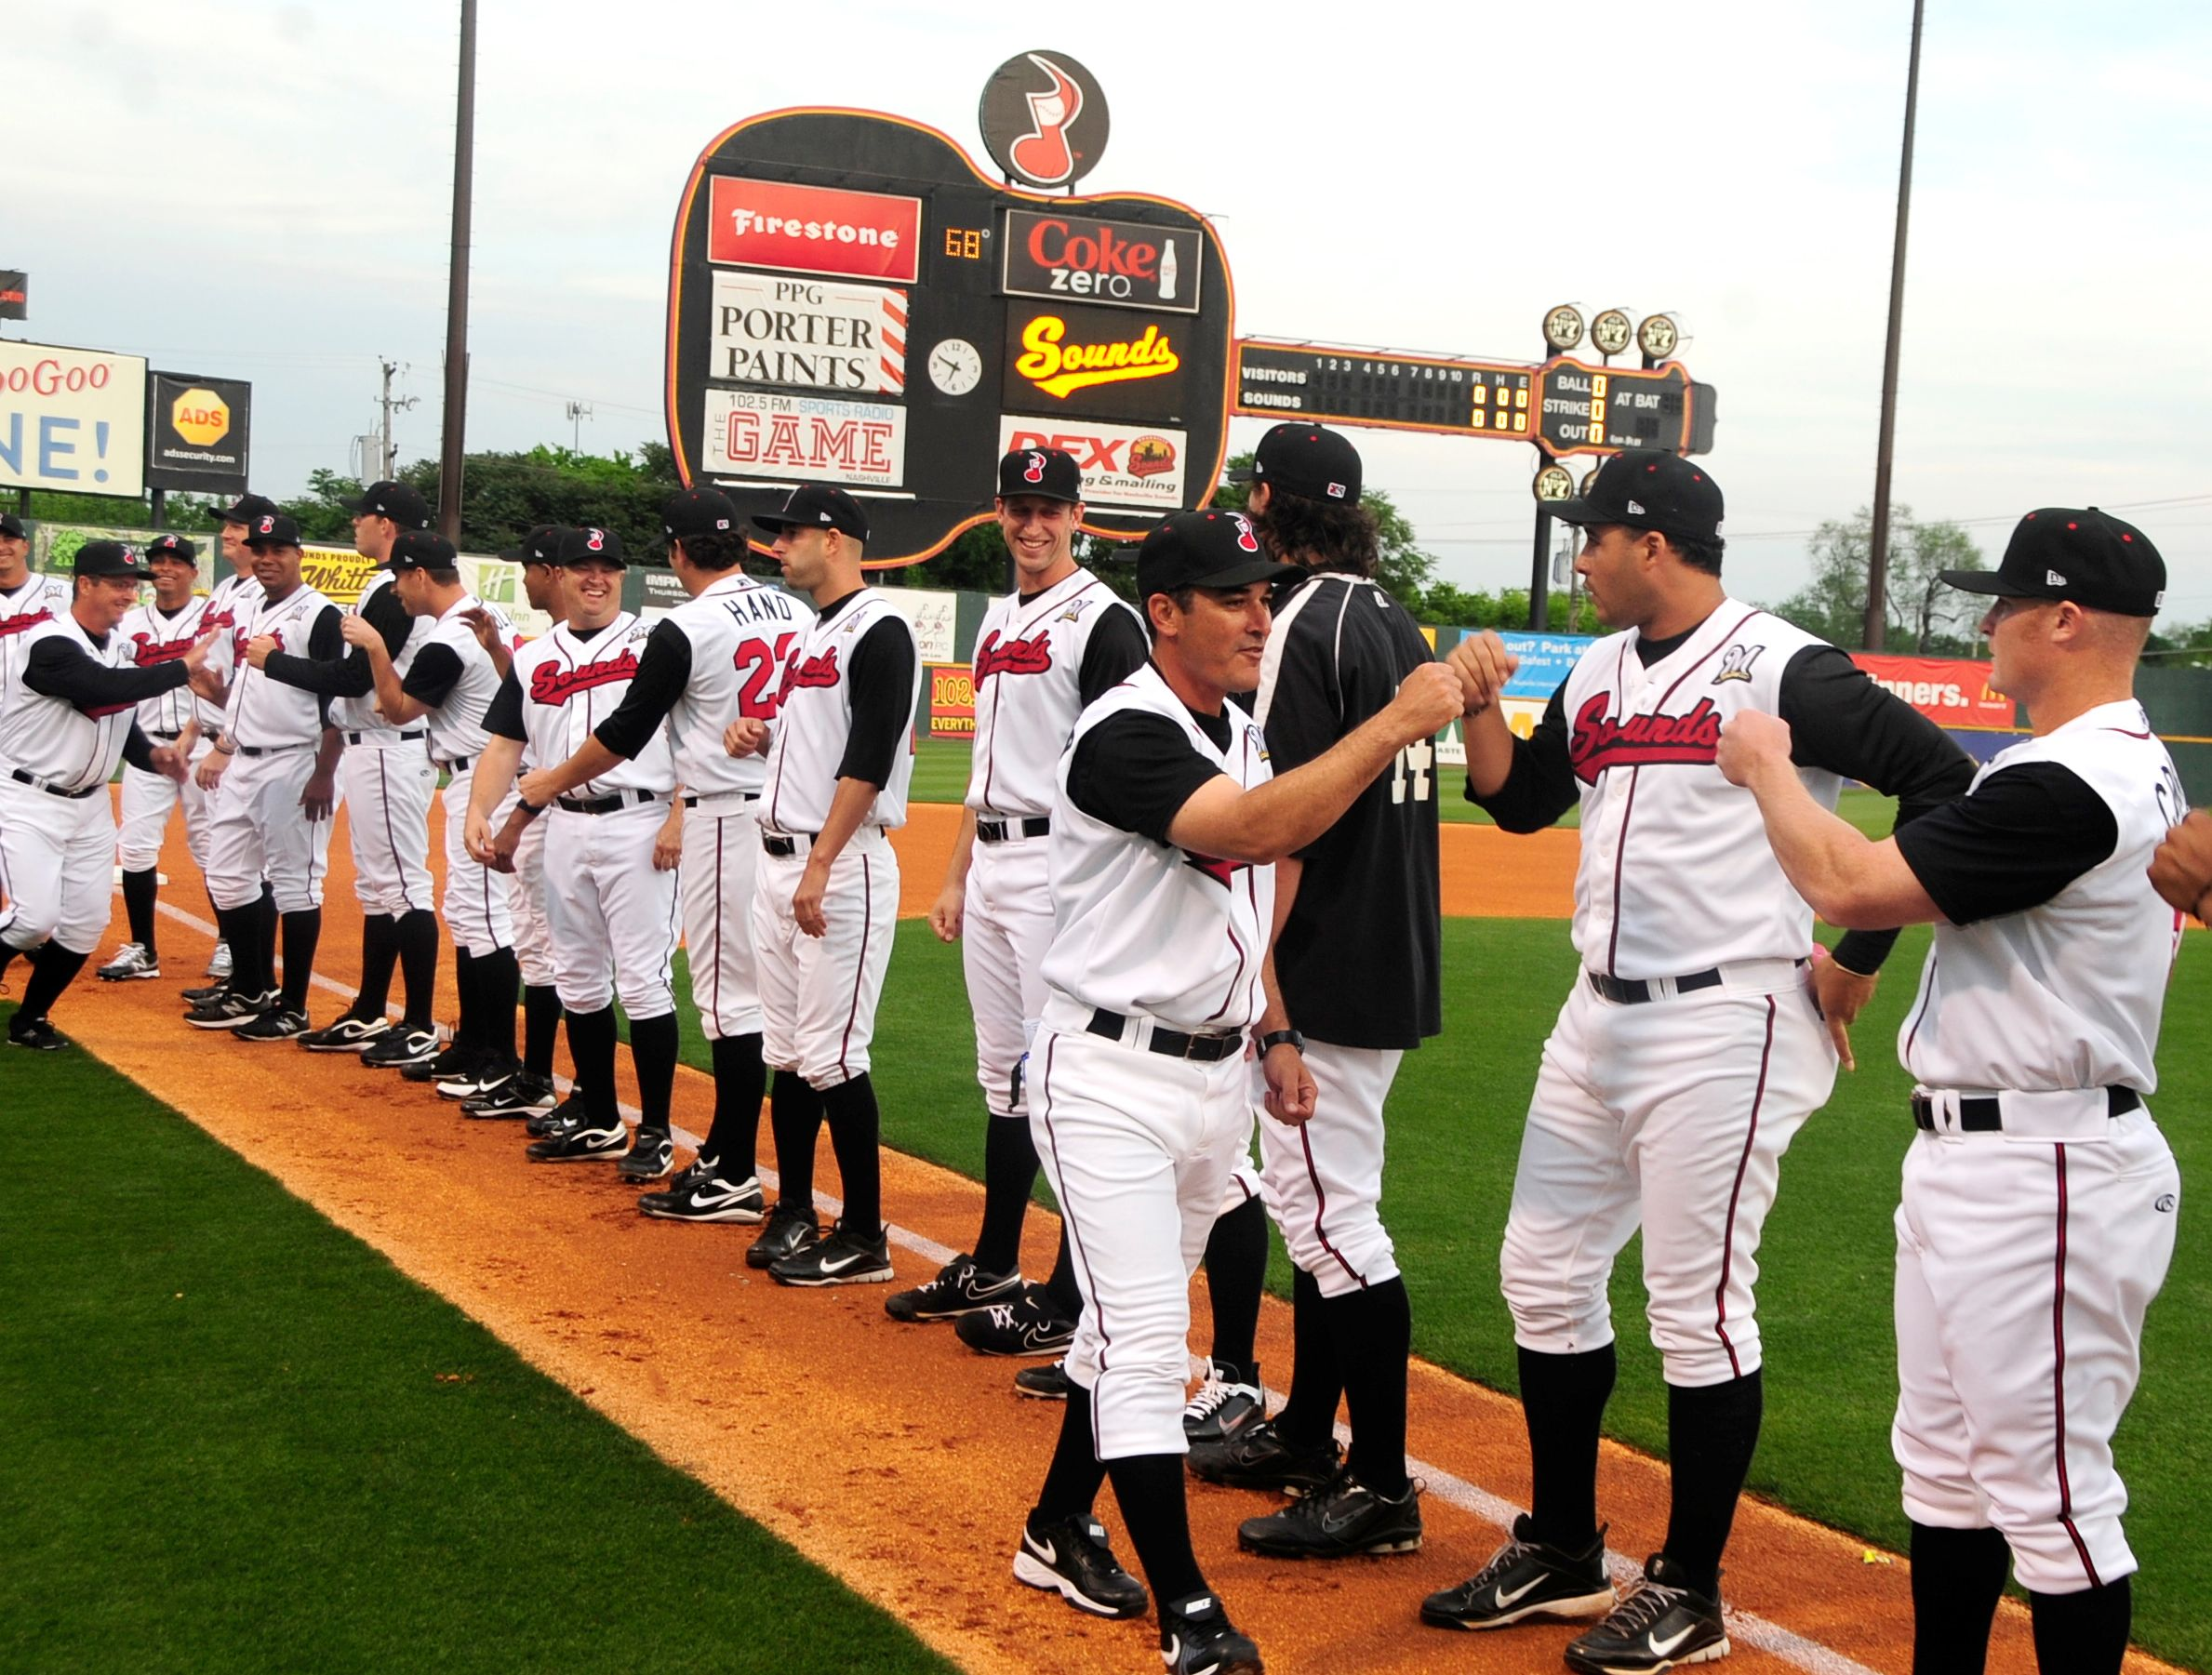 Get down and dirty with nashvilles glbt sports leagues